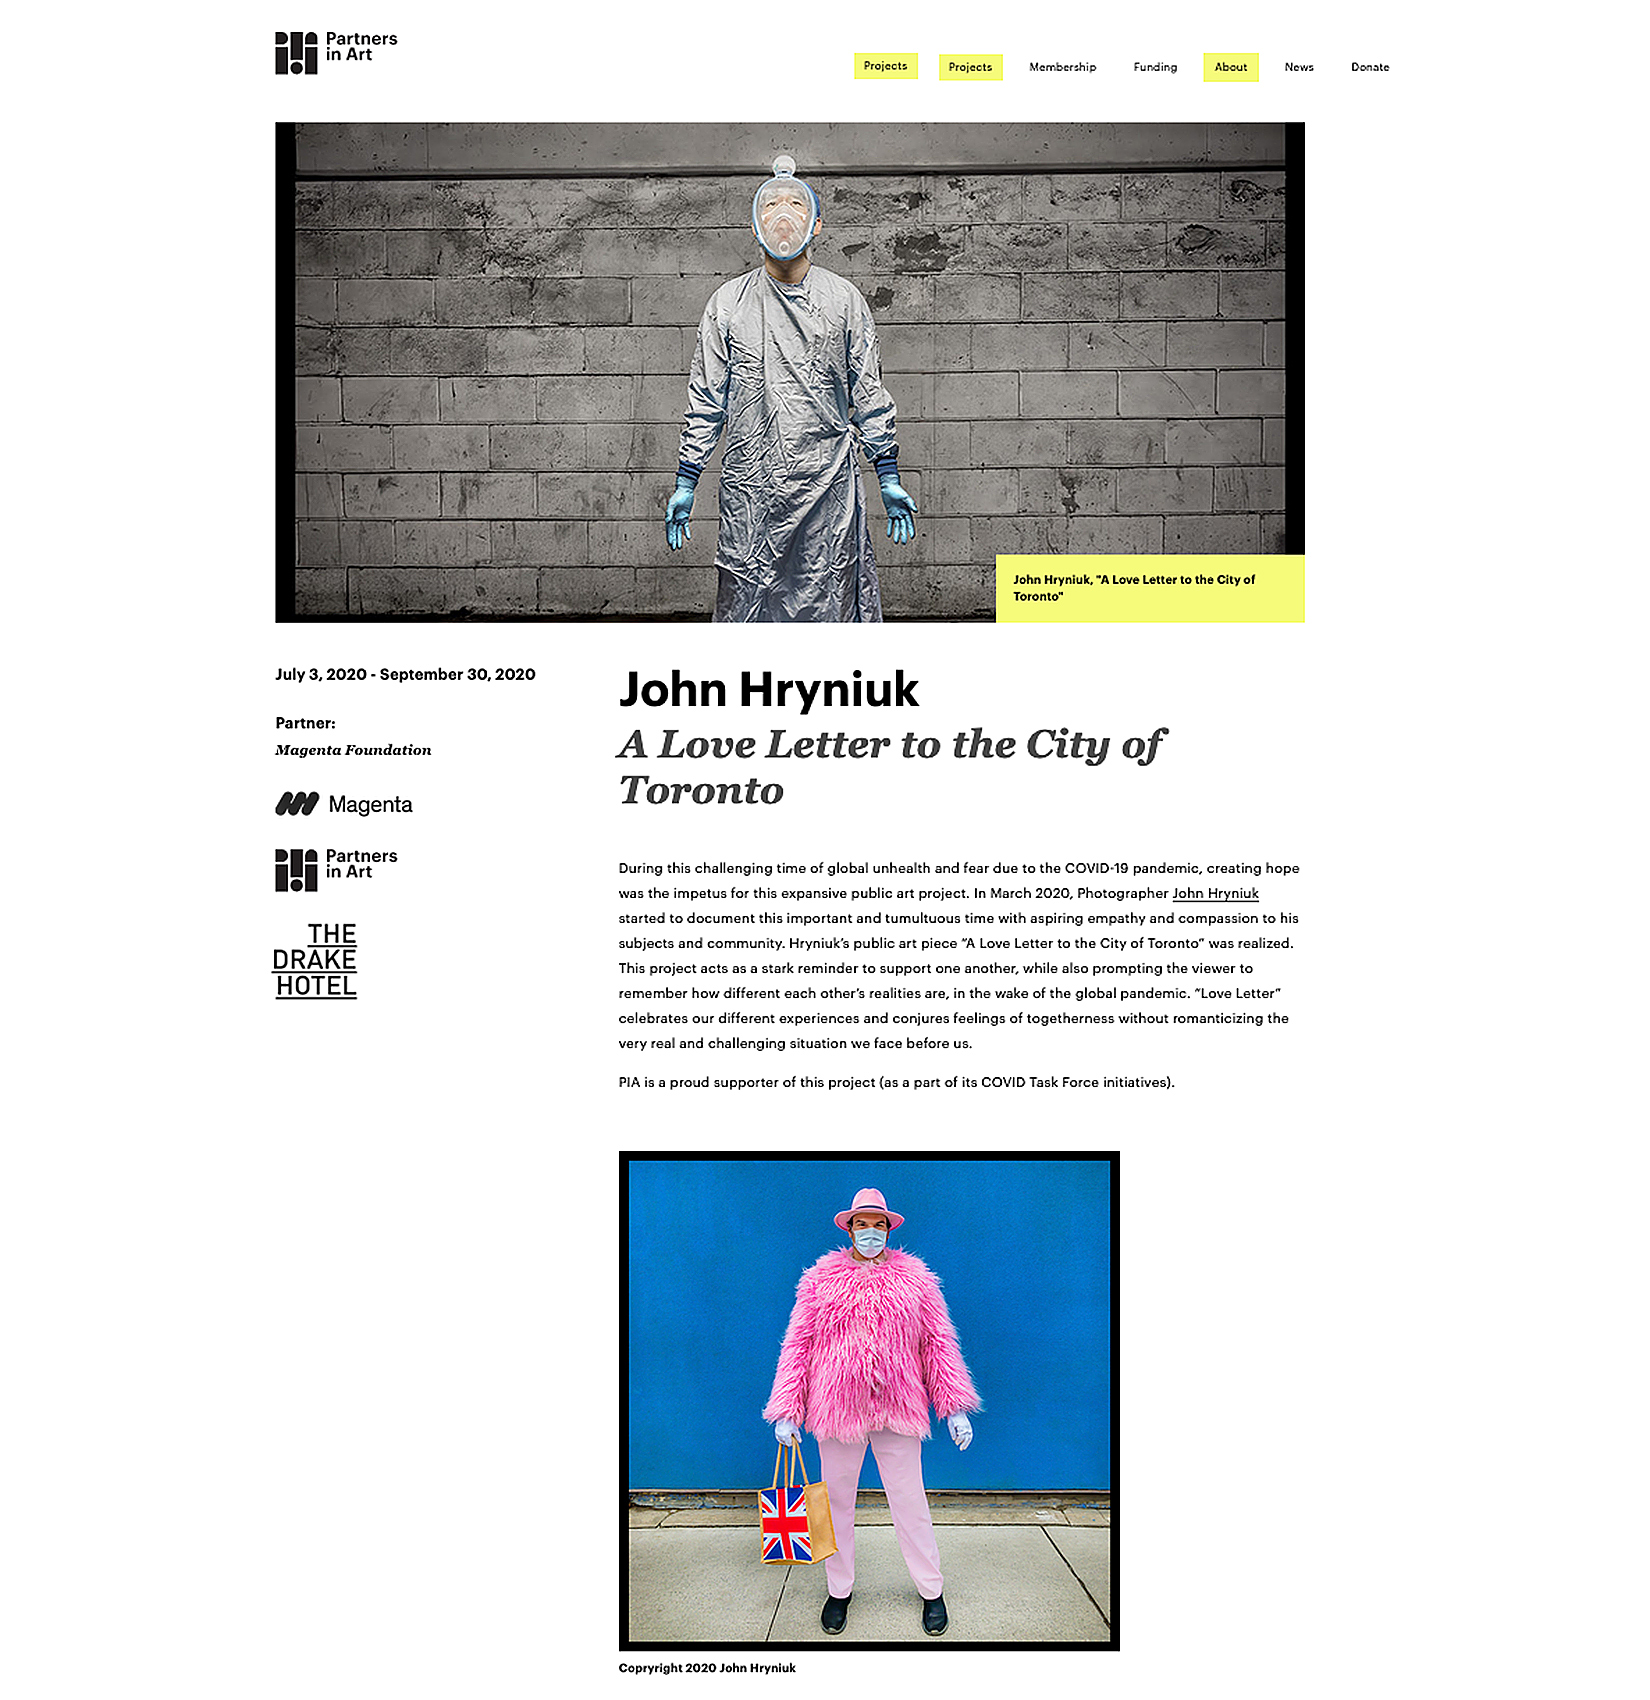 Partners in Art features John Hryniuk Photography